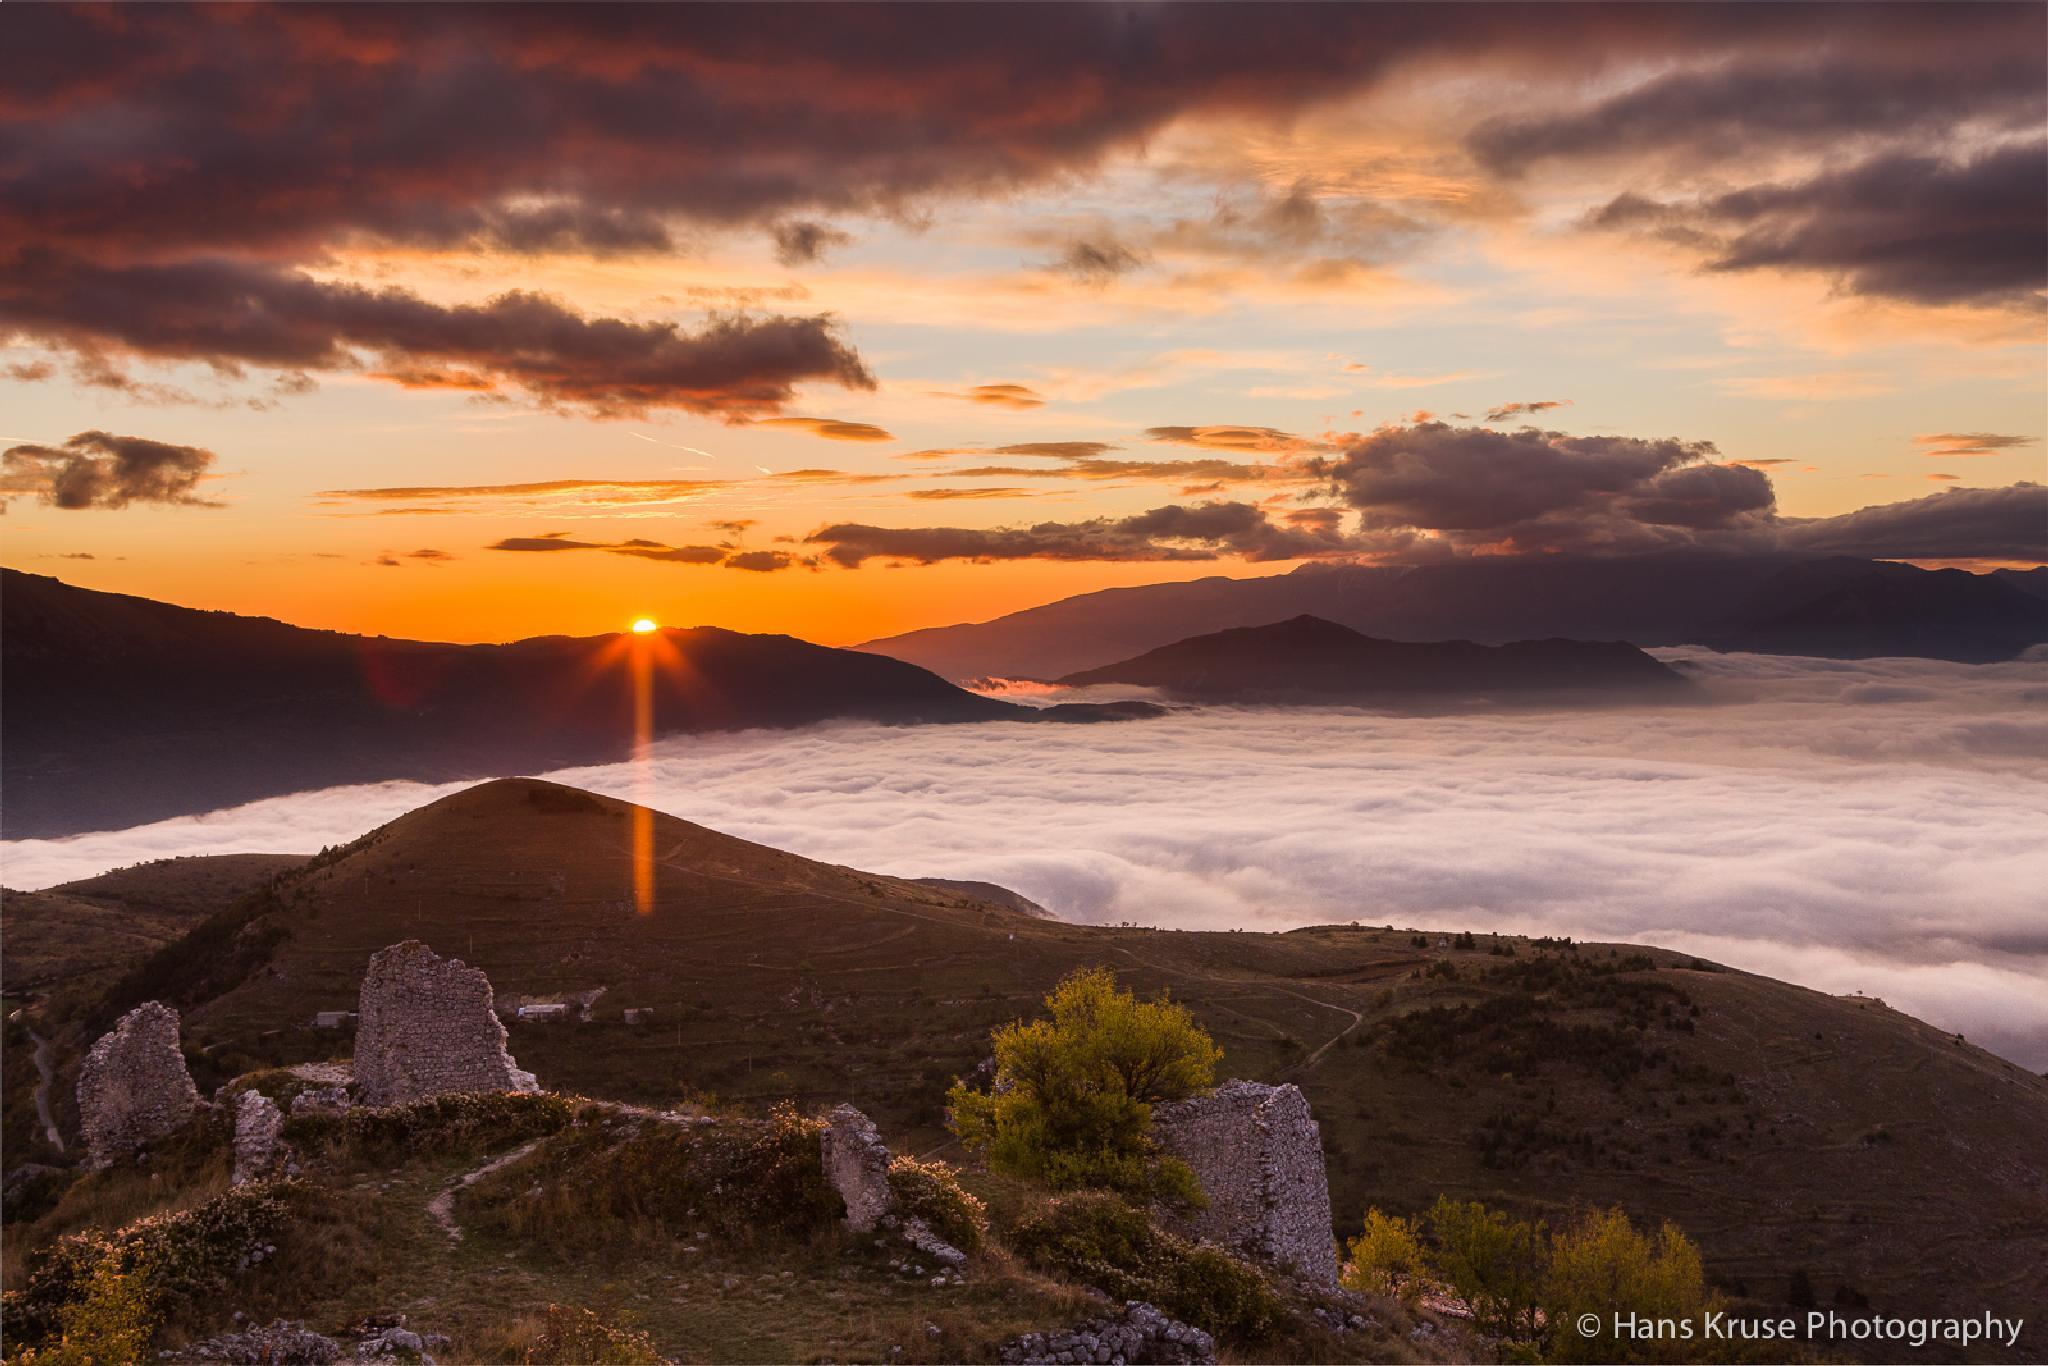 Sunrise at the old castle by Hans Kruse